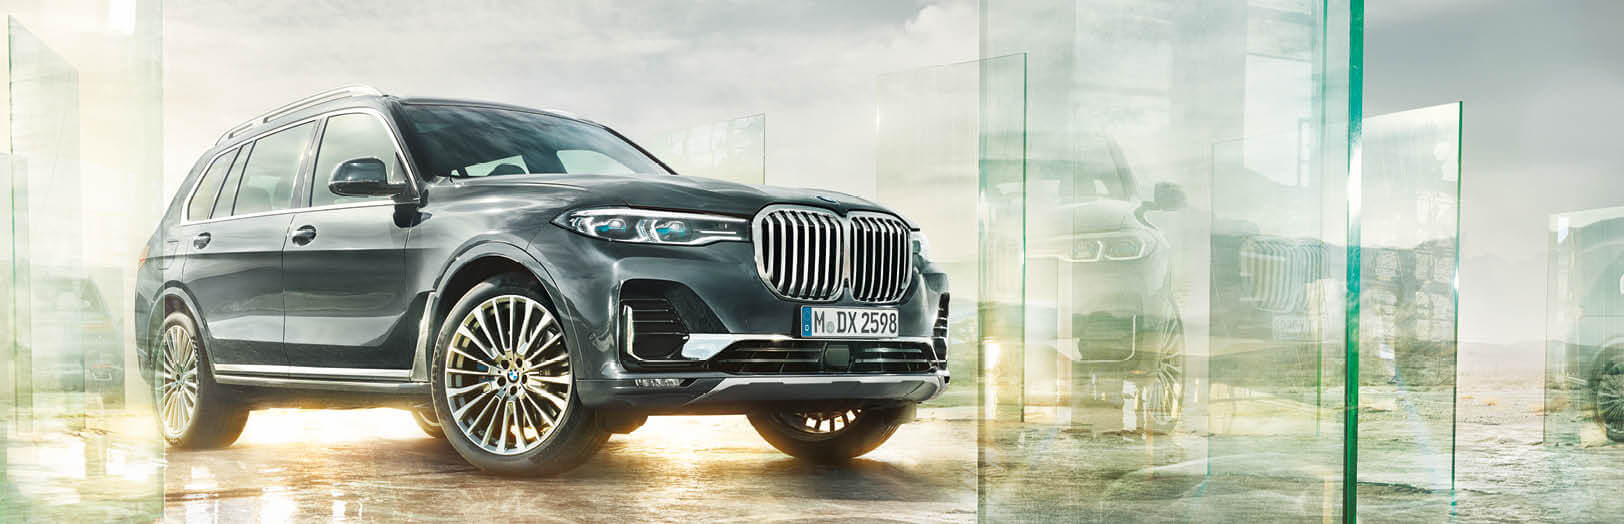 THE X7: Der BMW X7 xDrive40d